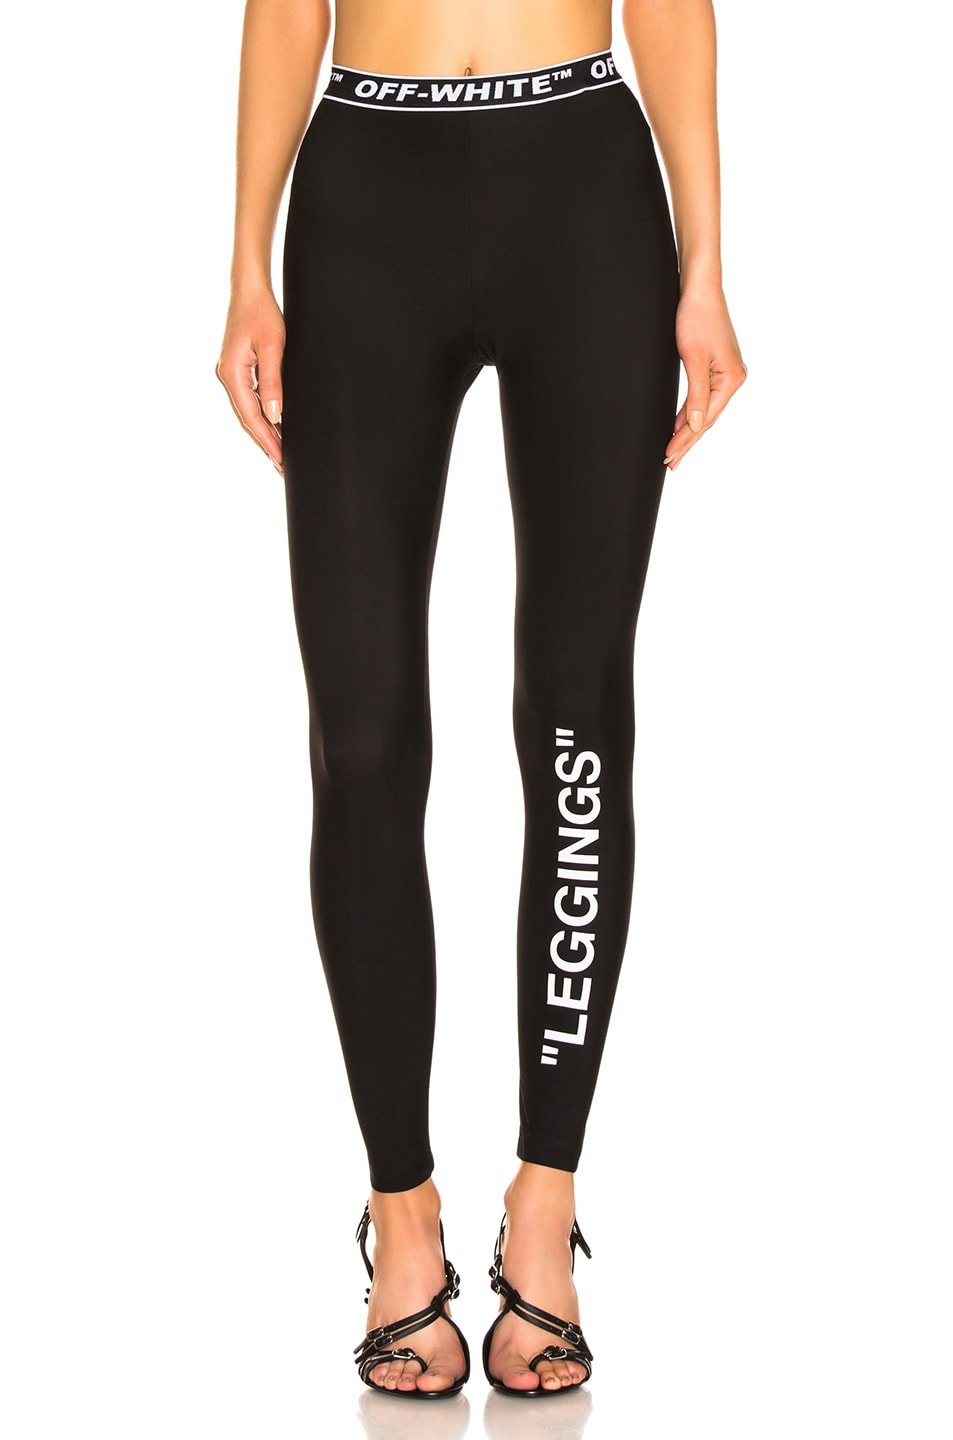 Image 1 of OFF-WHITE Legging in Black